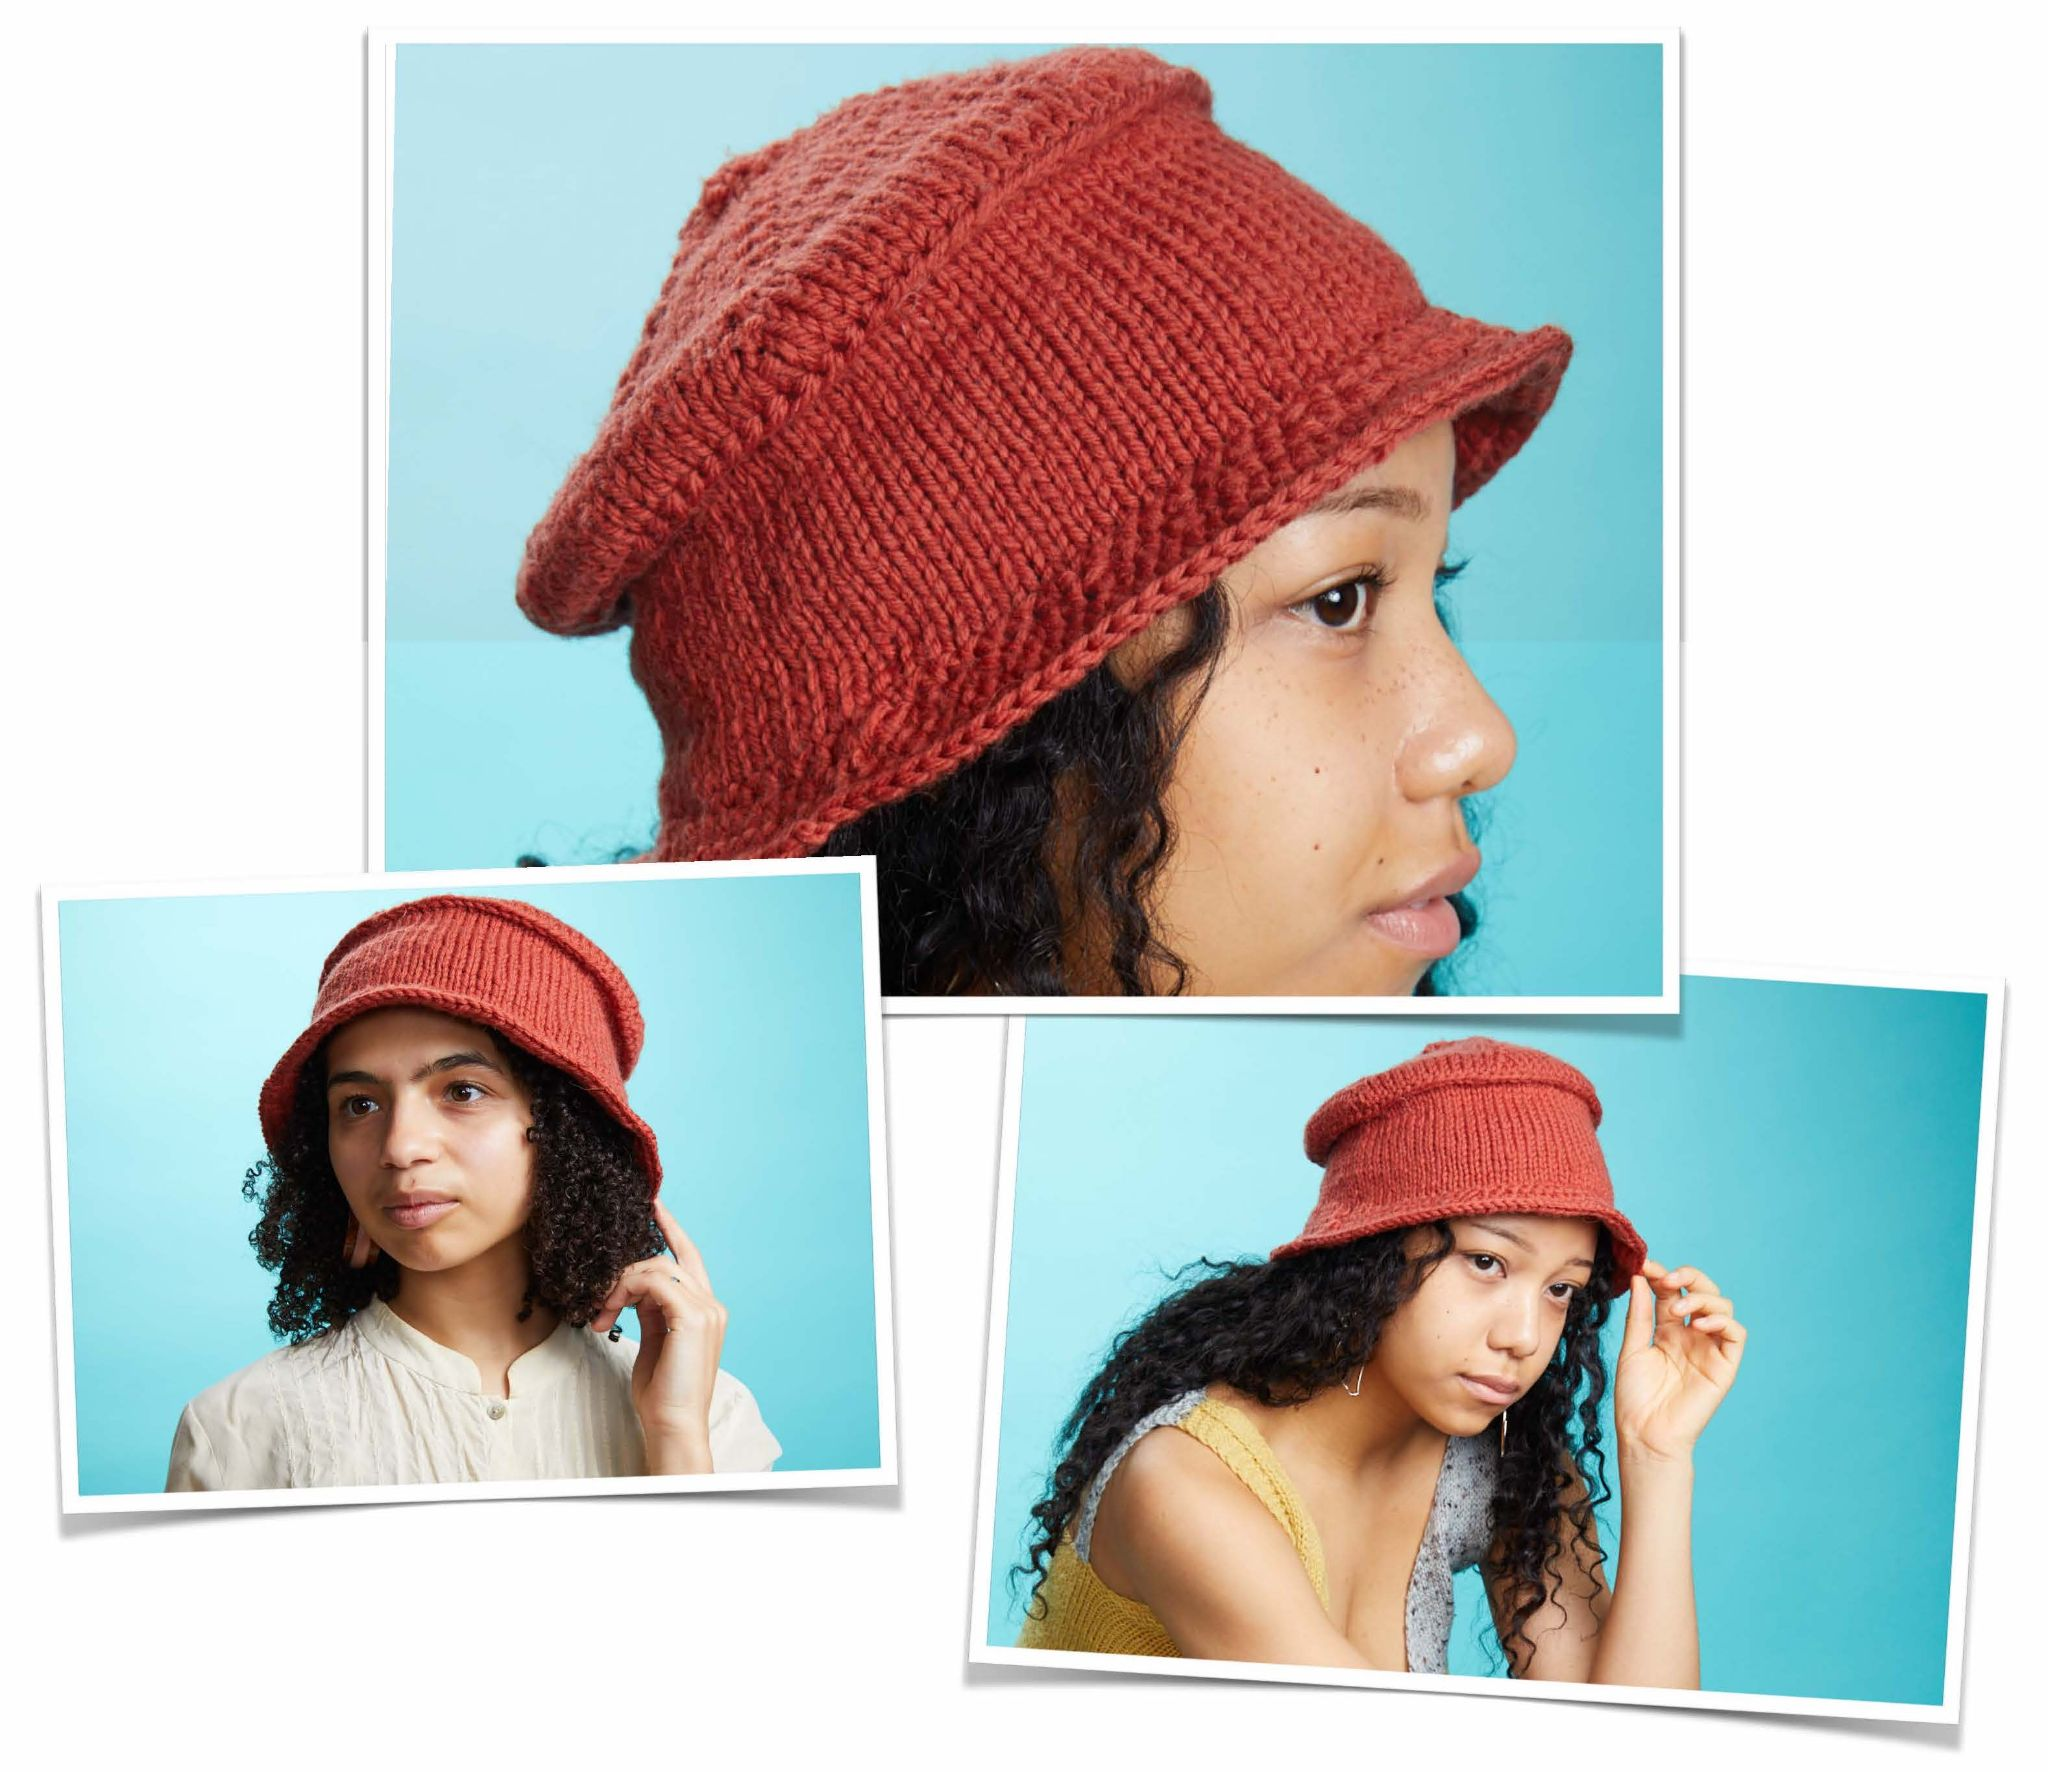 Three photos of black women wearing a handknit bucket-shaped hat in a dark coral colorway, on a turquoise background.